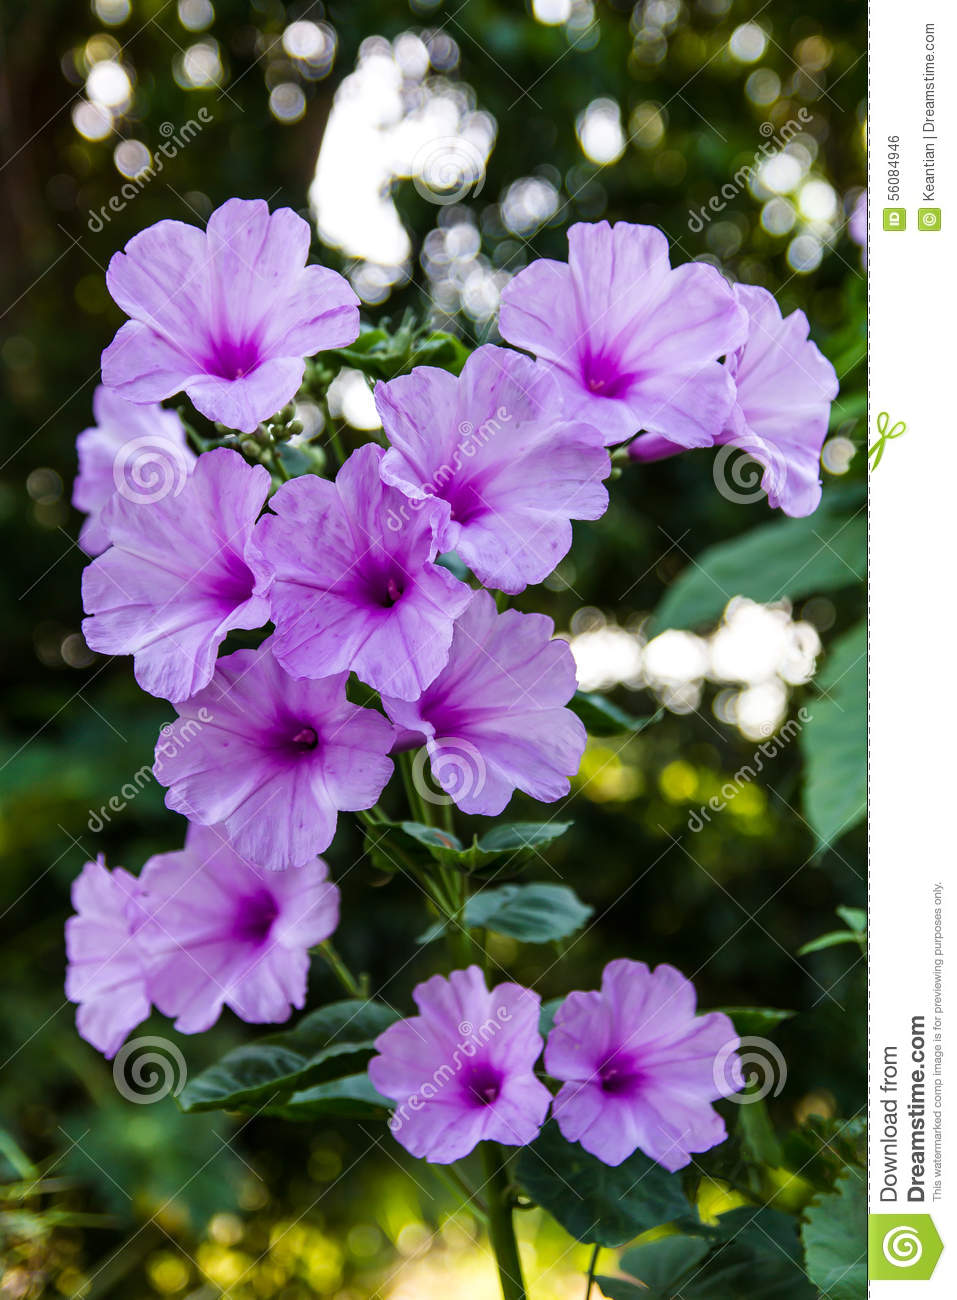 Morning Glory Flowers Bokeh Stock Photo Image Of Blooming Lots